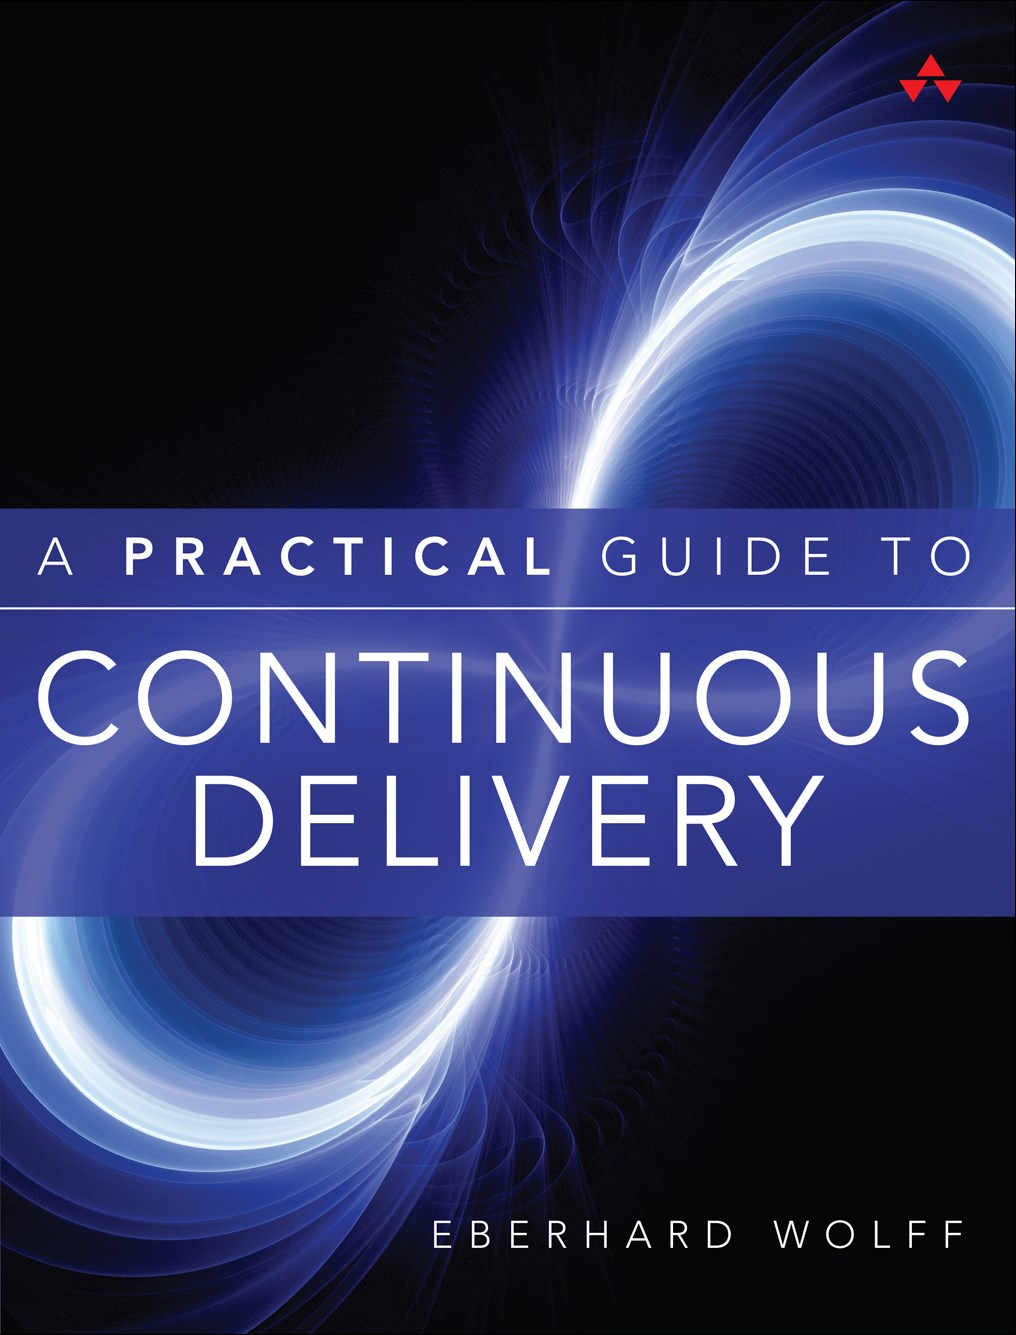 Practical Guide to Continuous Delivery, A